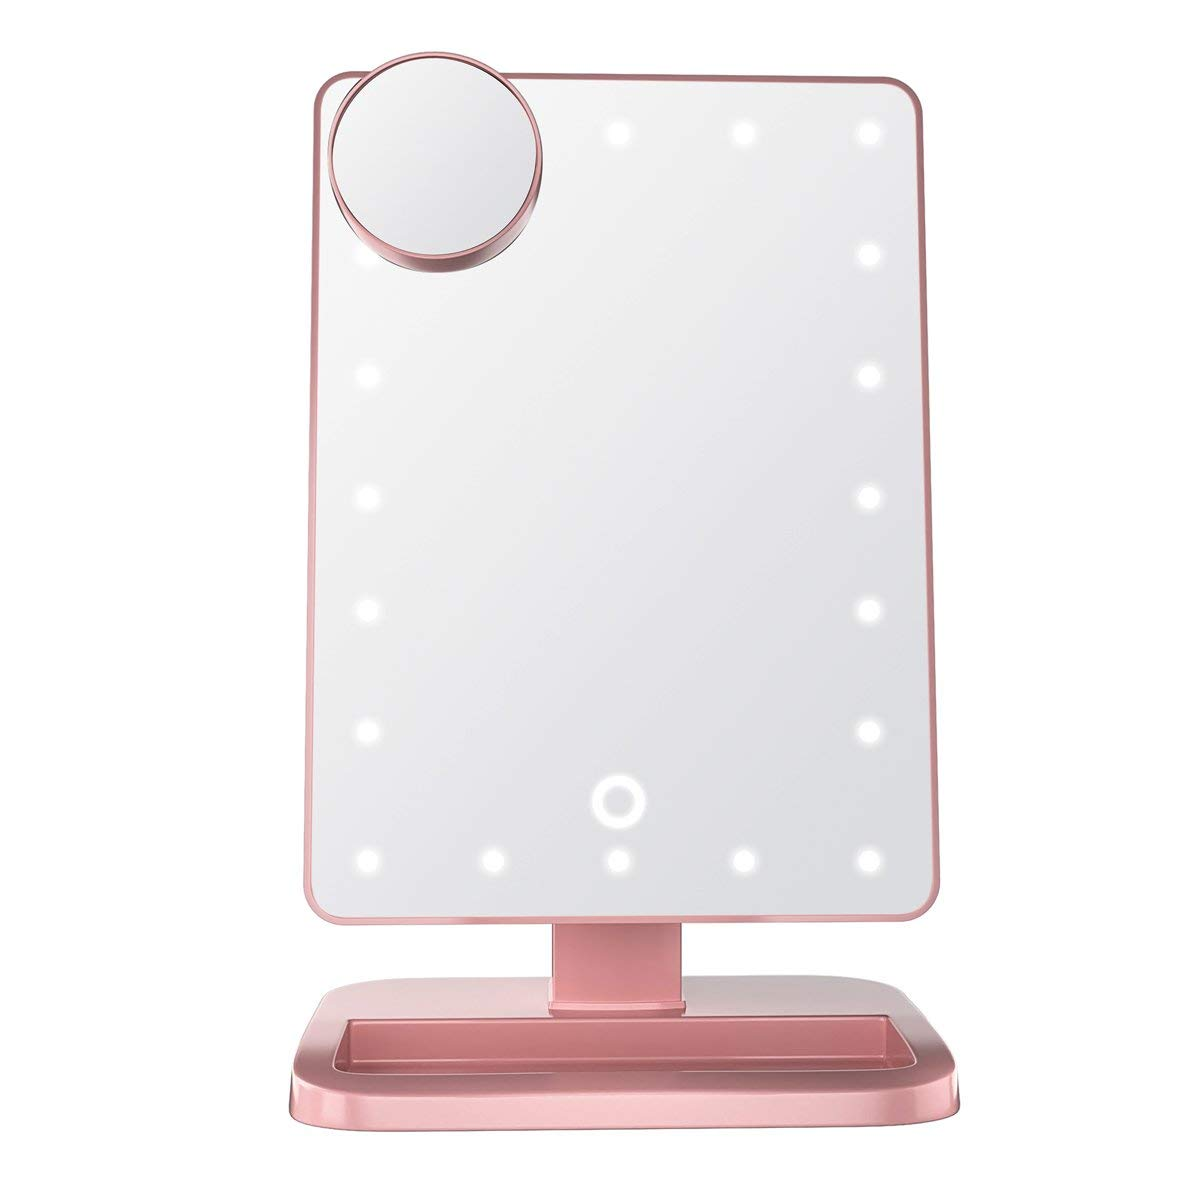 Impressions Vanity Hollywood Makeup Vanity Mirror with Lights and Bluetooth Speakers | Rose Gold Touch XL Dimmer LED Makeup Mirror with Bluetooth